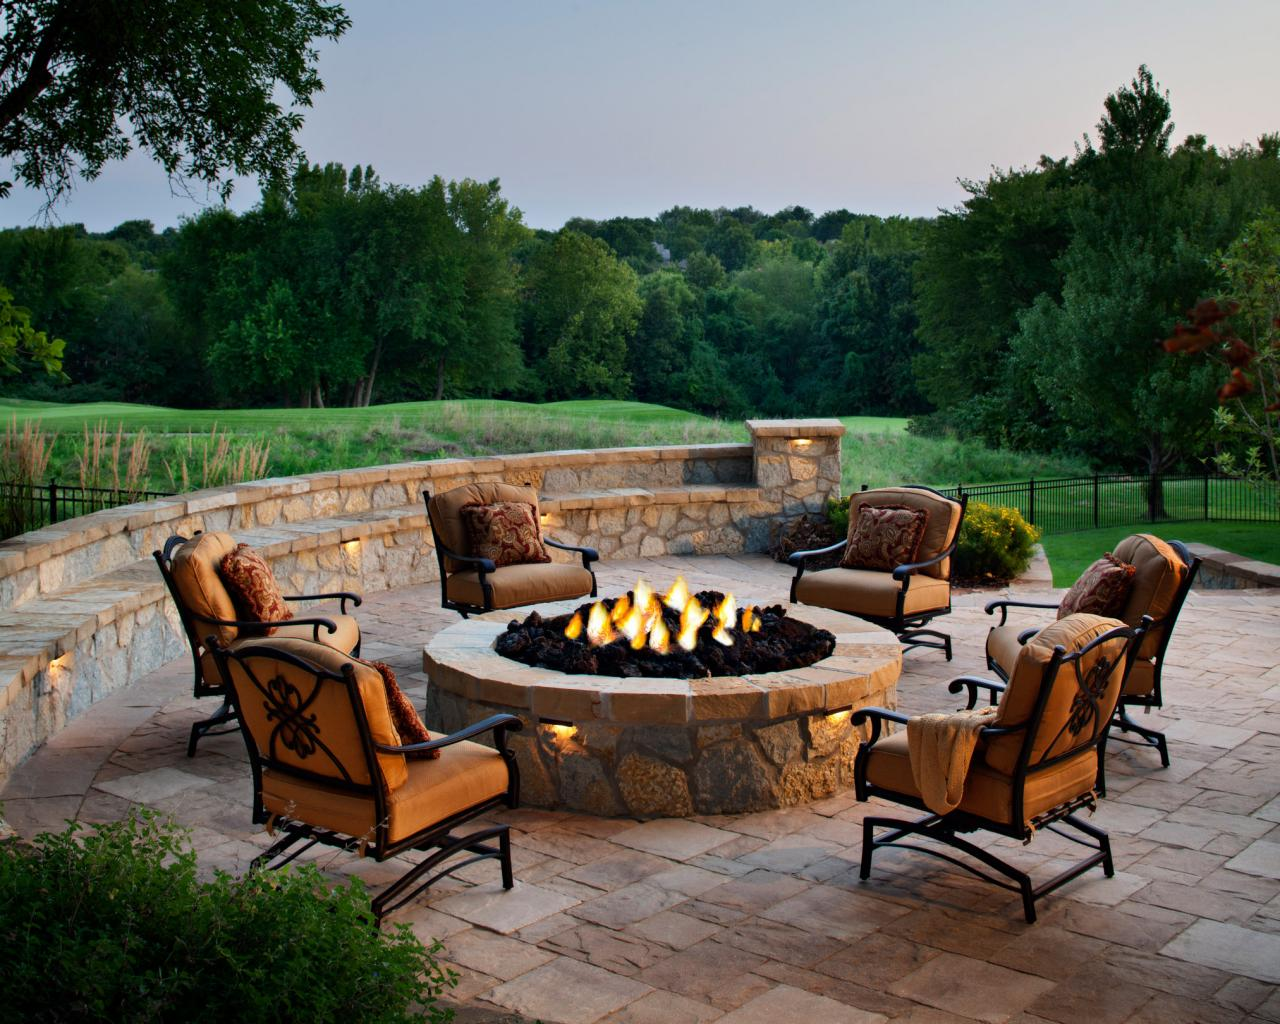 Outdoor Furniture Design Ideas designing a patio around a fire pit | diy